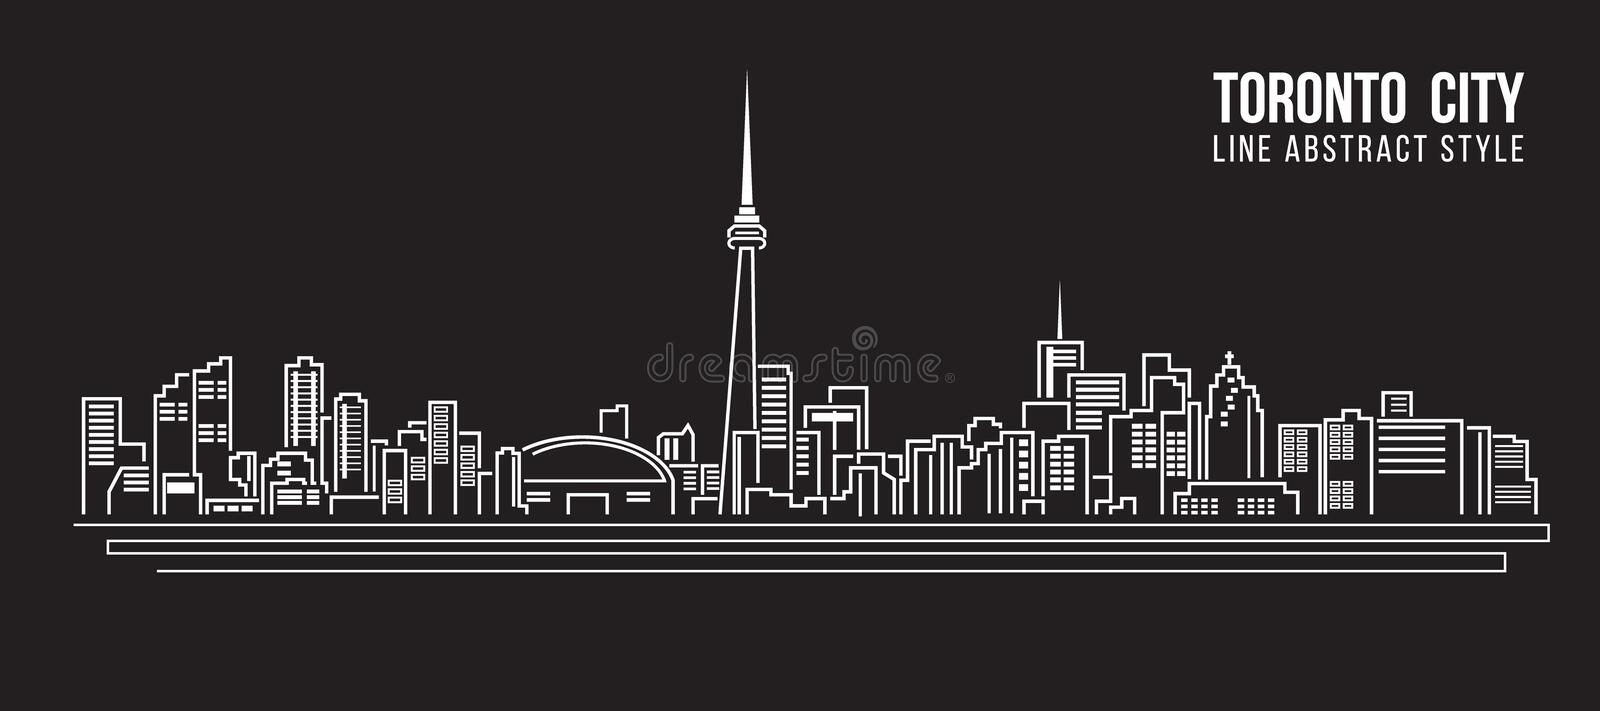 Cityscape Building Line art Vector Illustration design - Toronto city royalty free illustration